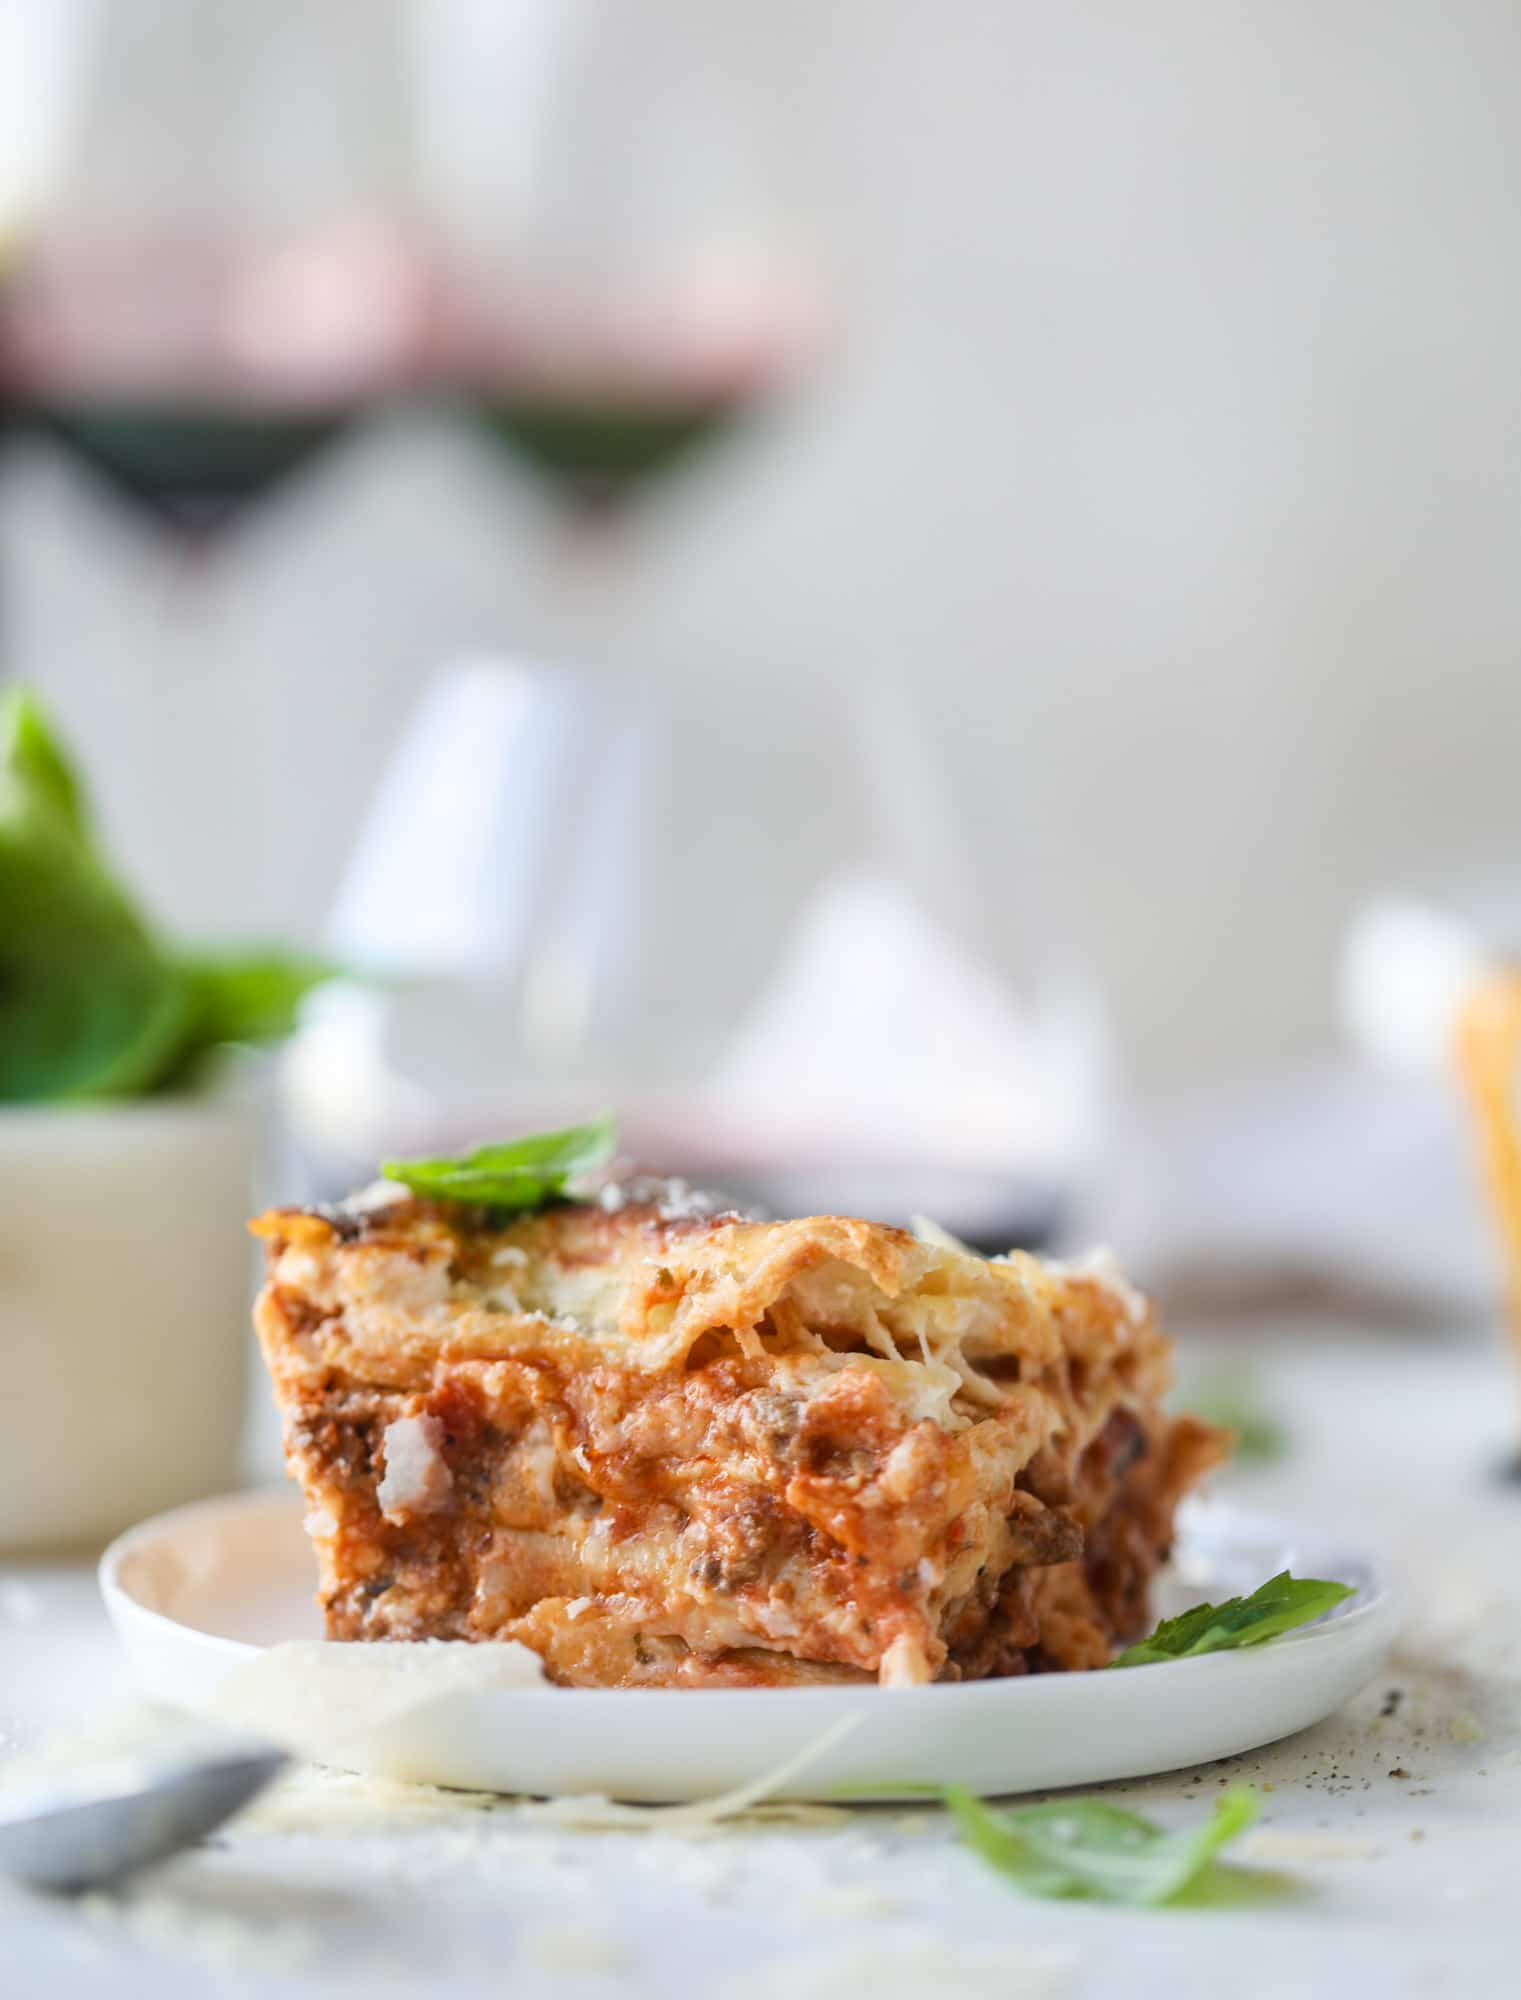 This lasagna bolognese is the ultimate comfort food. Meaty sauce, whole wheat lasagna noodles, creamy bechamel and grated cheese come together to create the most perfect slice of lasagna heaven! I howsweeteats.com #lasagna #bolognese